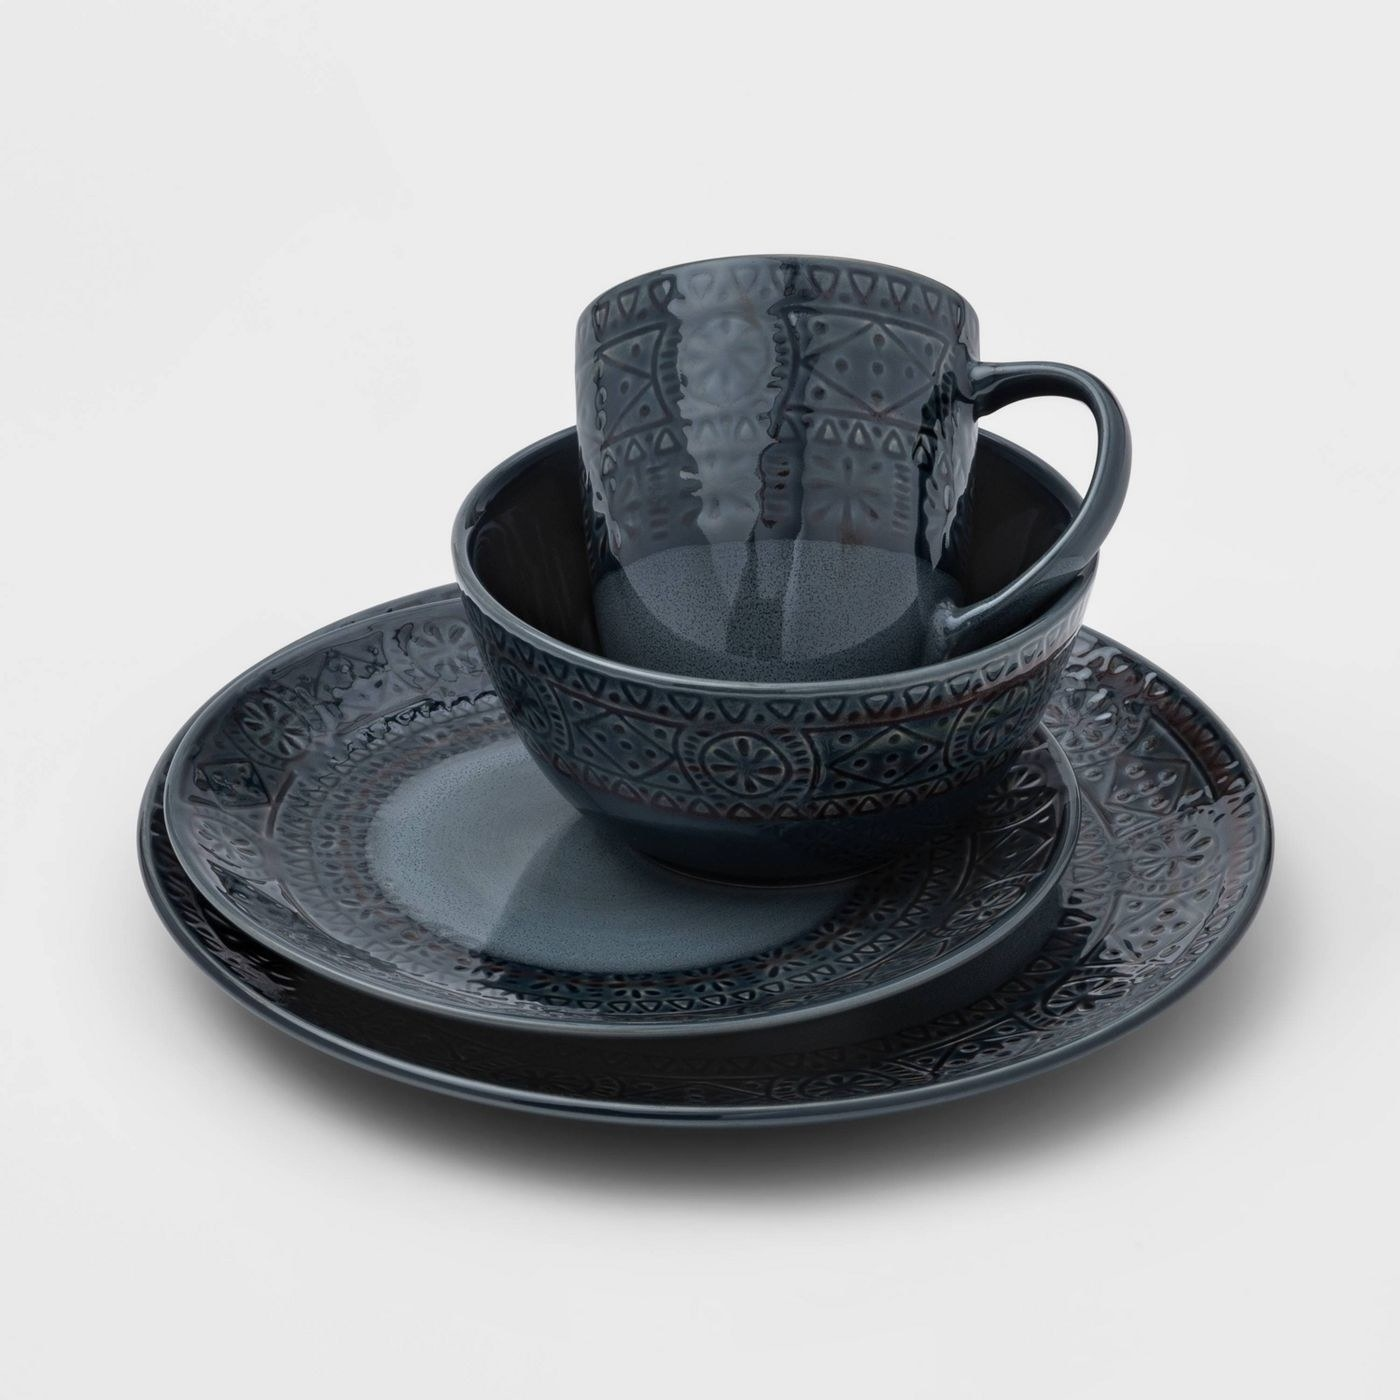 Four pieces of the ceramic kingfield debosseed dinnerware set from threshold